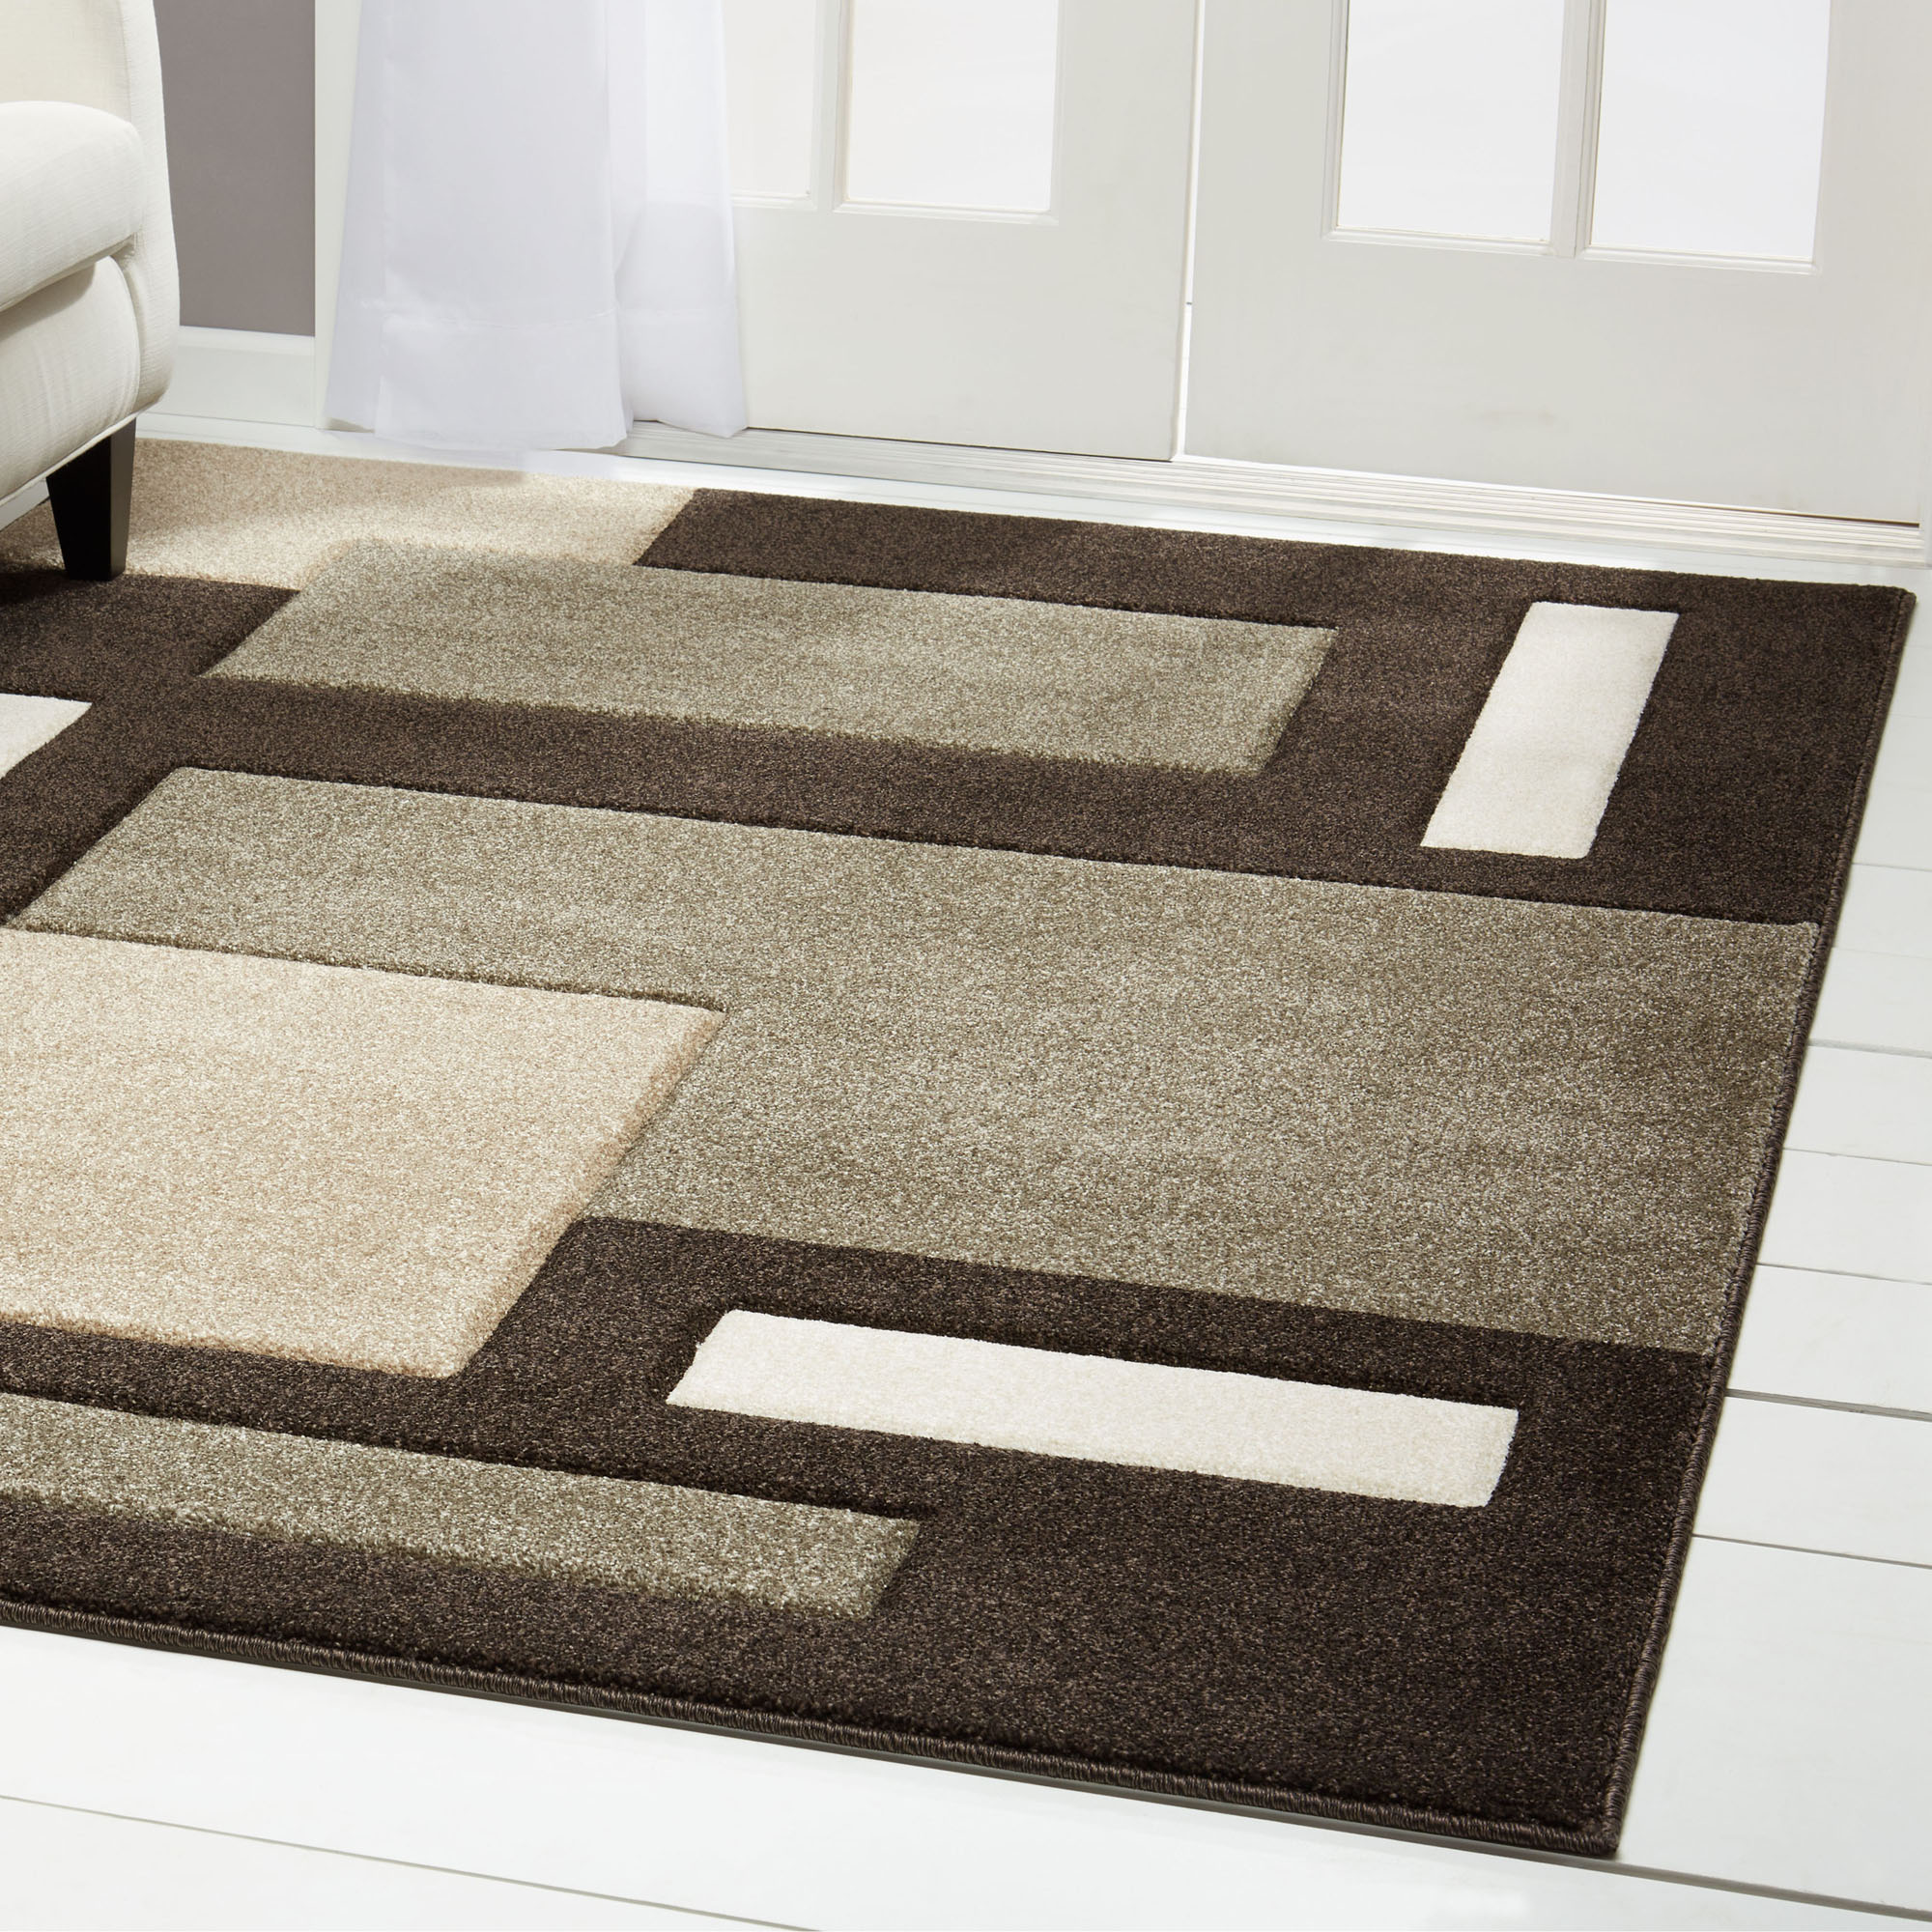 Buy Contemporary Dark Brown Modern Area Rug Hand Carved Squares Abstract Carpet Online In Bahrain 233382007